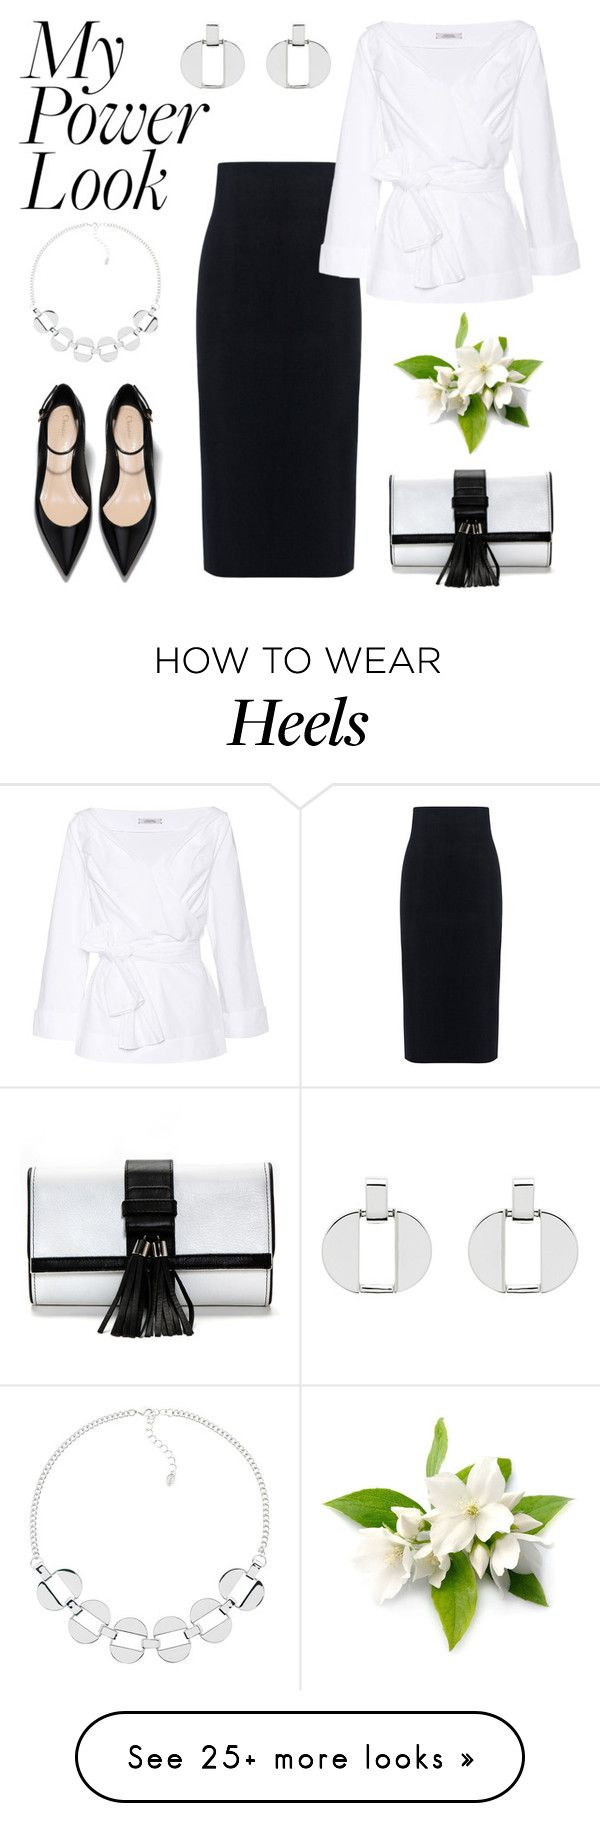 """My Power Look"" by kim-mcculley on Polyvore featuring 10 Crosby Derek Lam, Dorothee Schumacher, Monet and MyPowerLook"